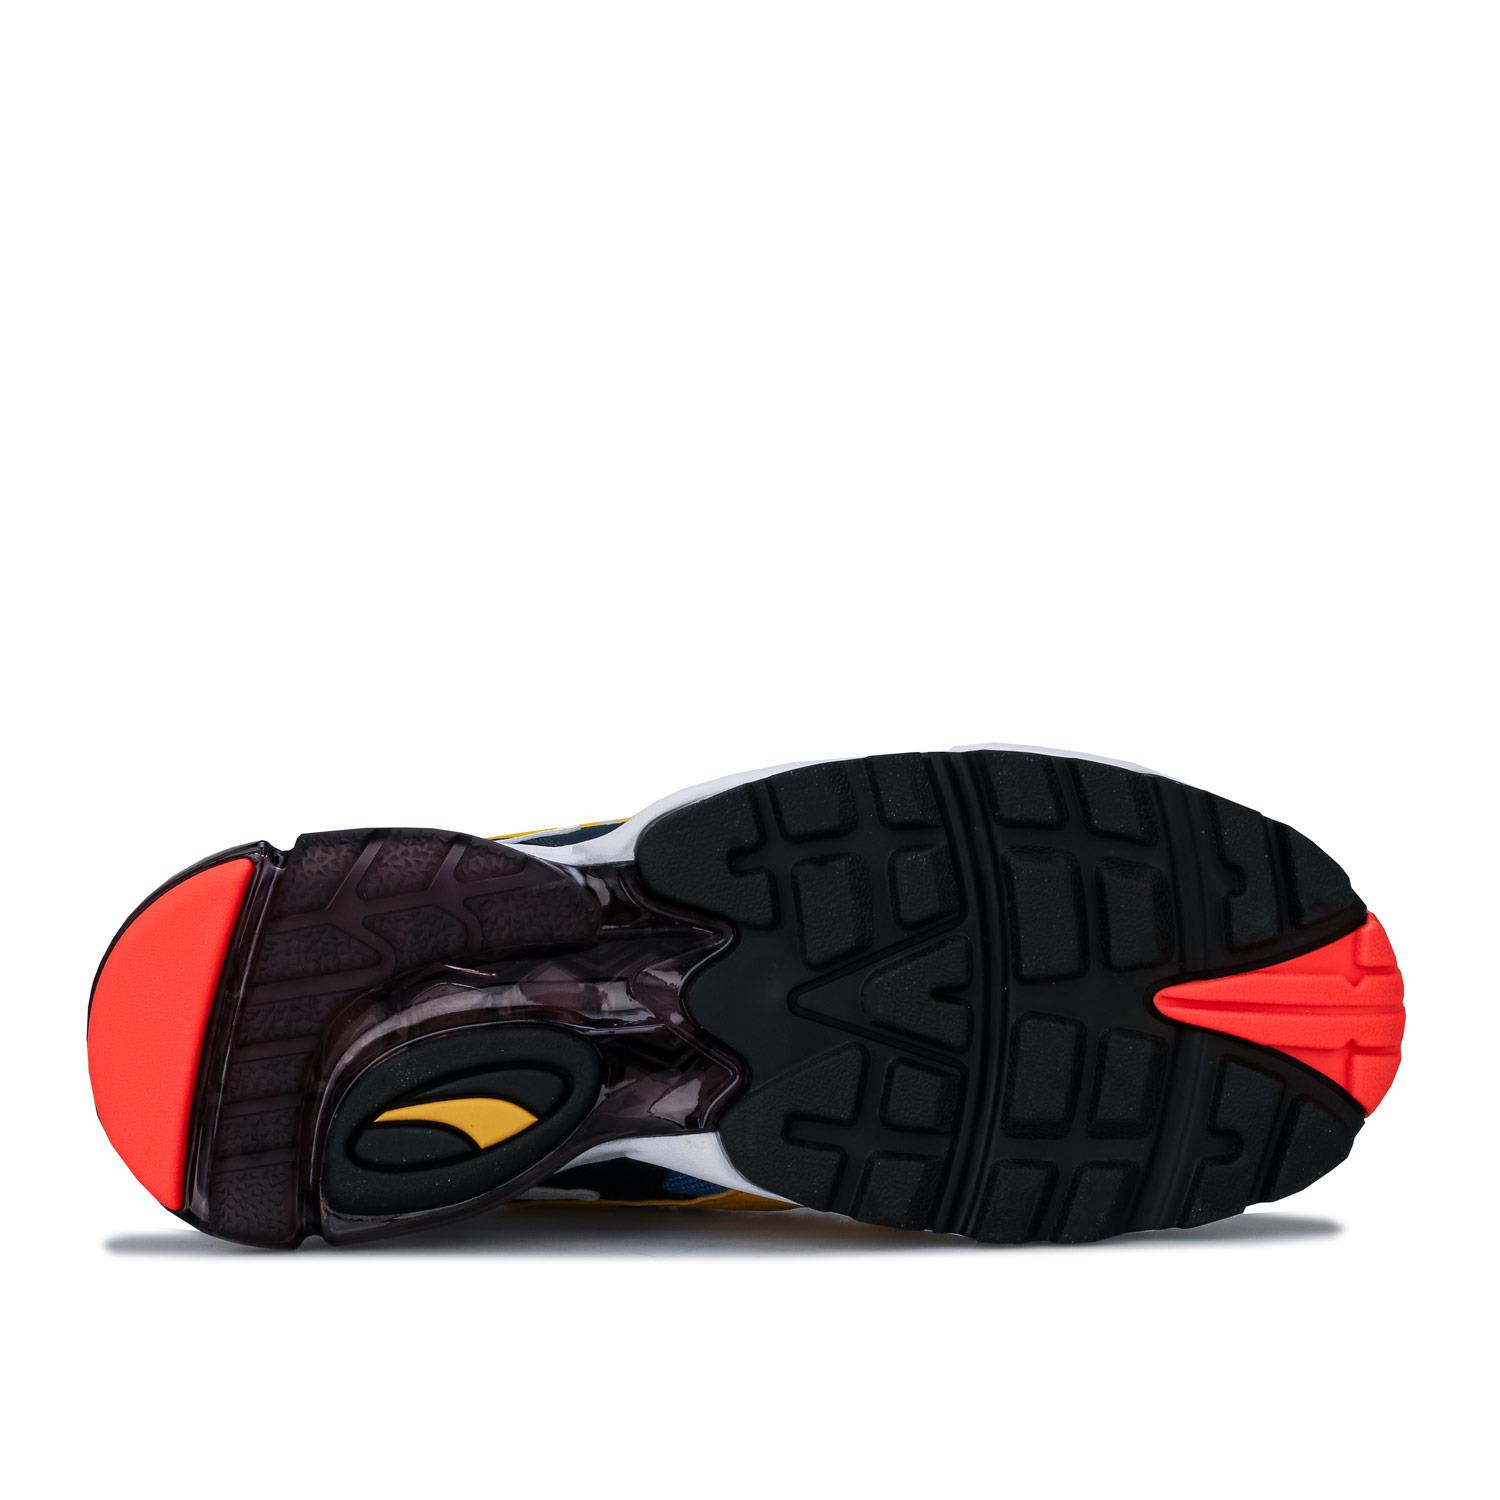 Mens-Puma-Cell-Alien-OG-Trainers-in-Blue-Green-Black-Red-Blue-and-Yellow thumbnail 11